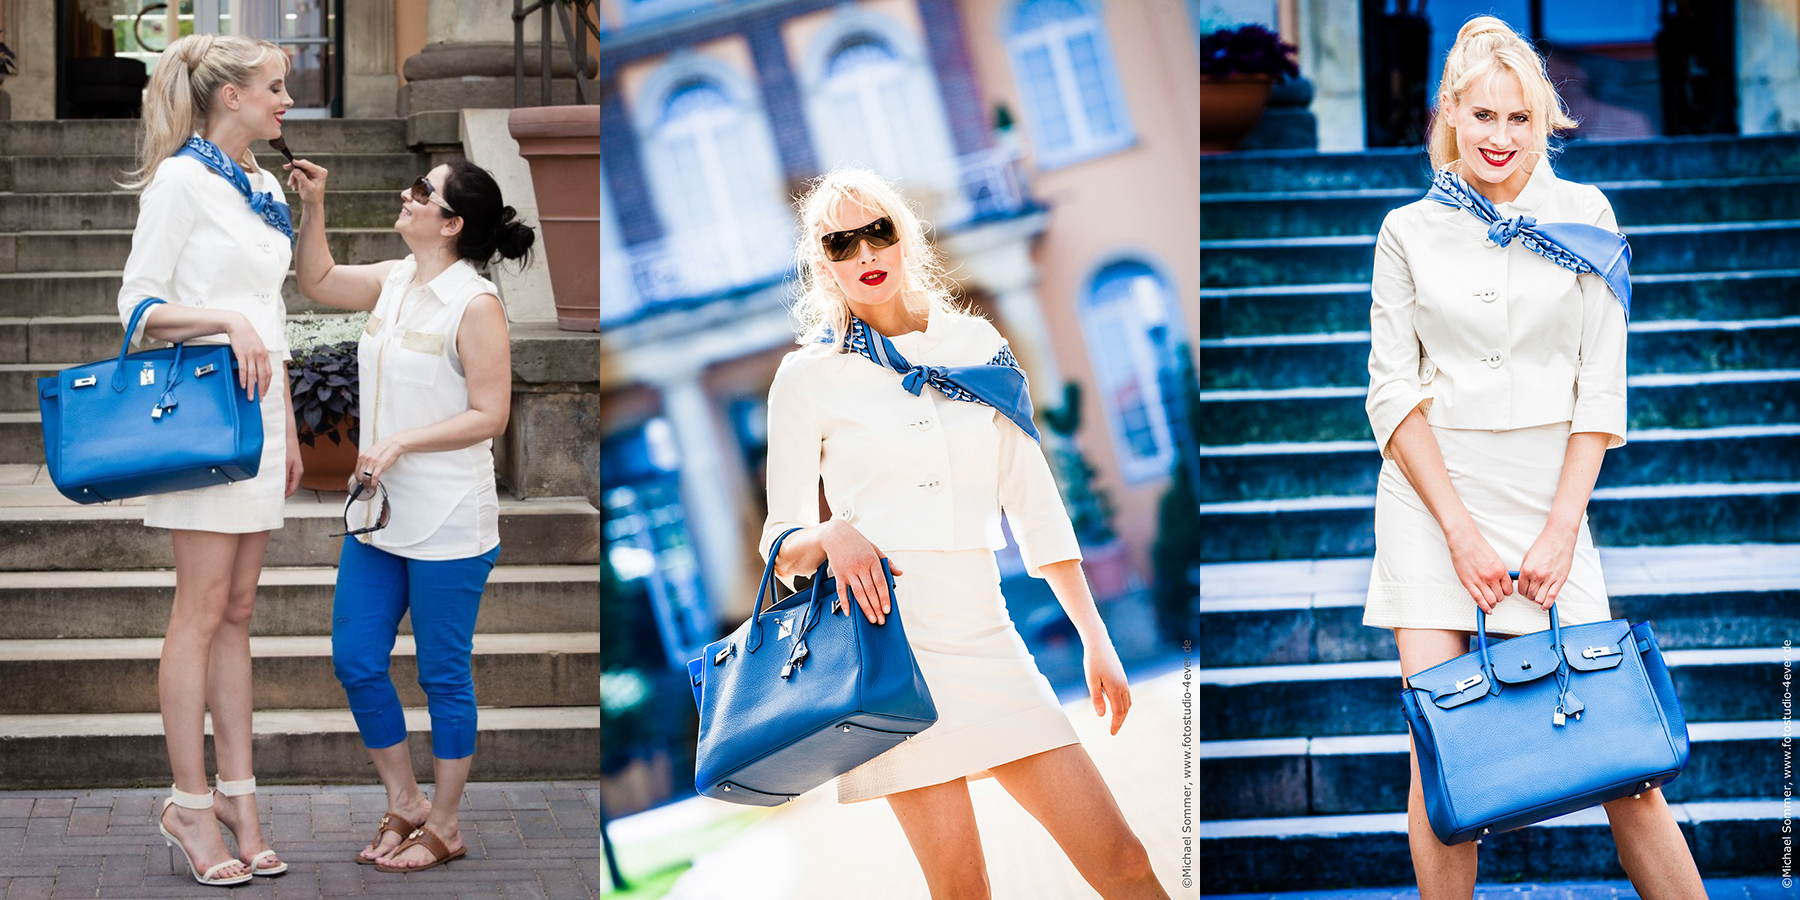 Collage_Fashionshooting_SchlossVelen